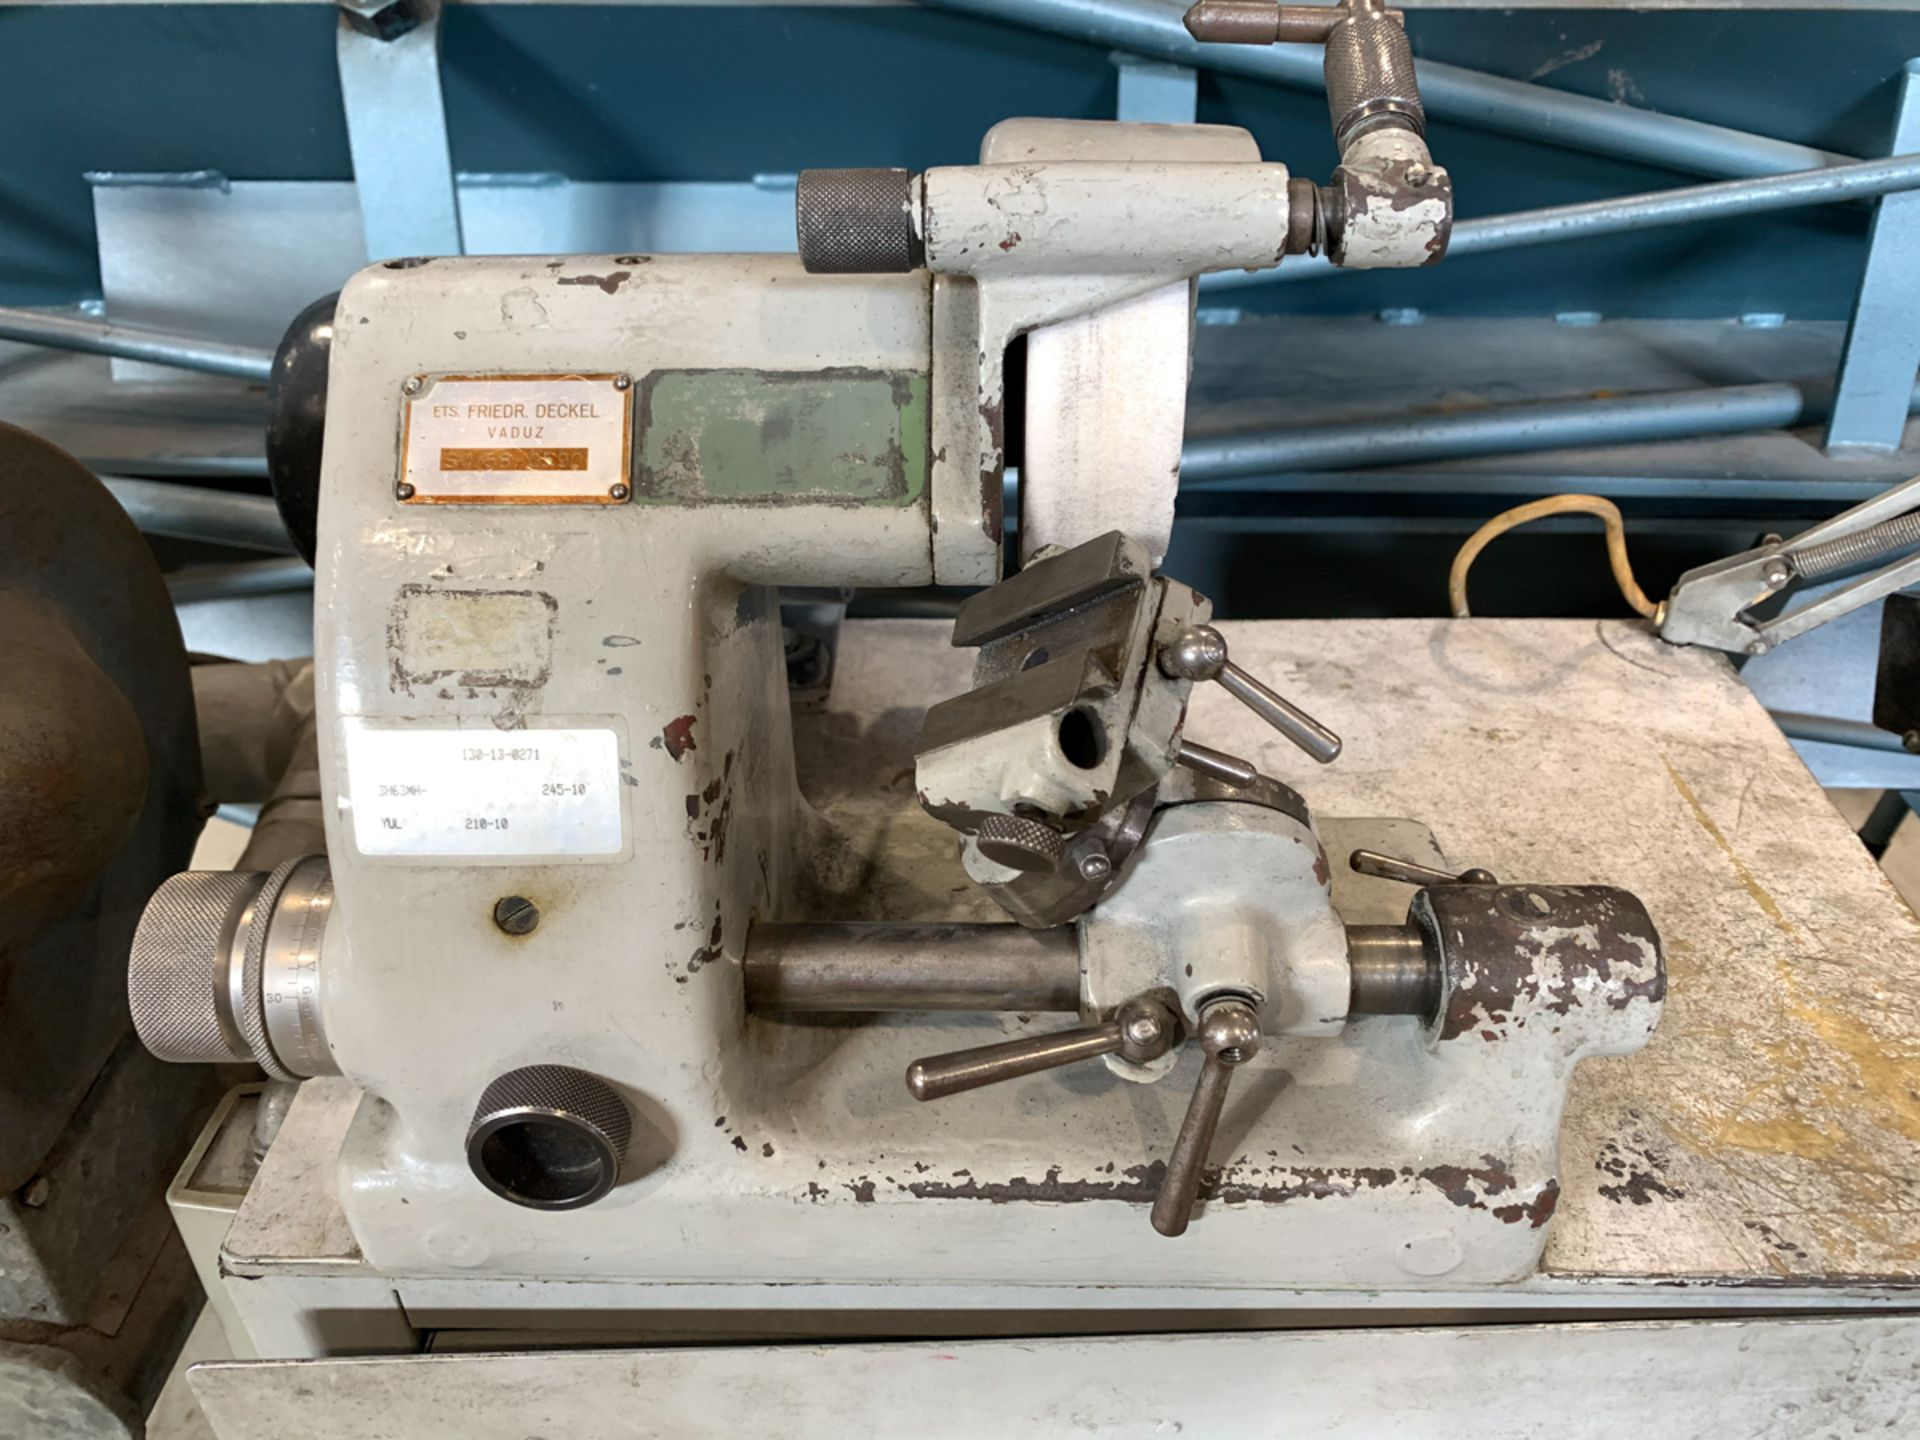 DECKEL TOOL & CUTTER GRINDER MOD 50/58-0592 W/ ACCESSORIES - Image 2 of 5